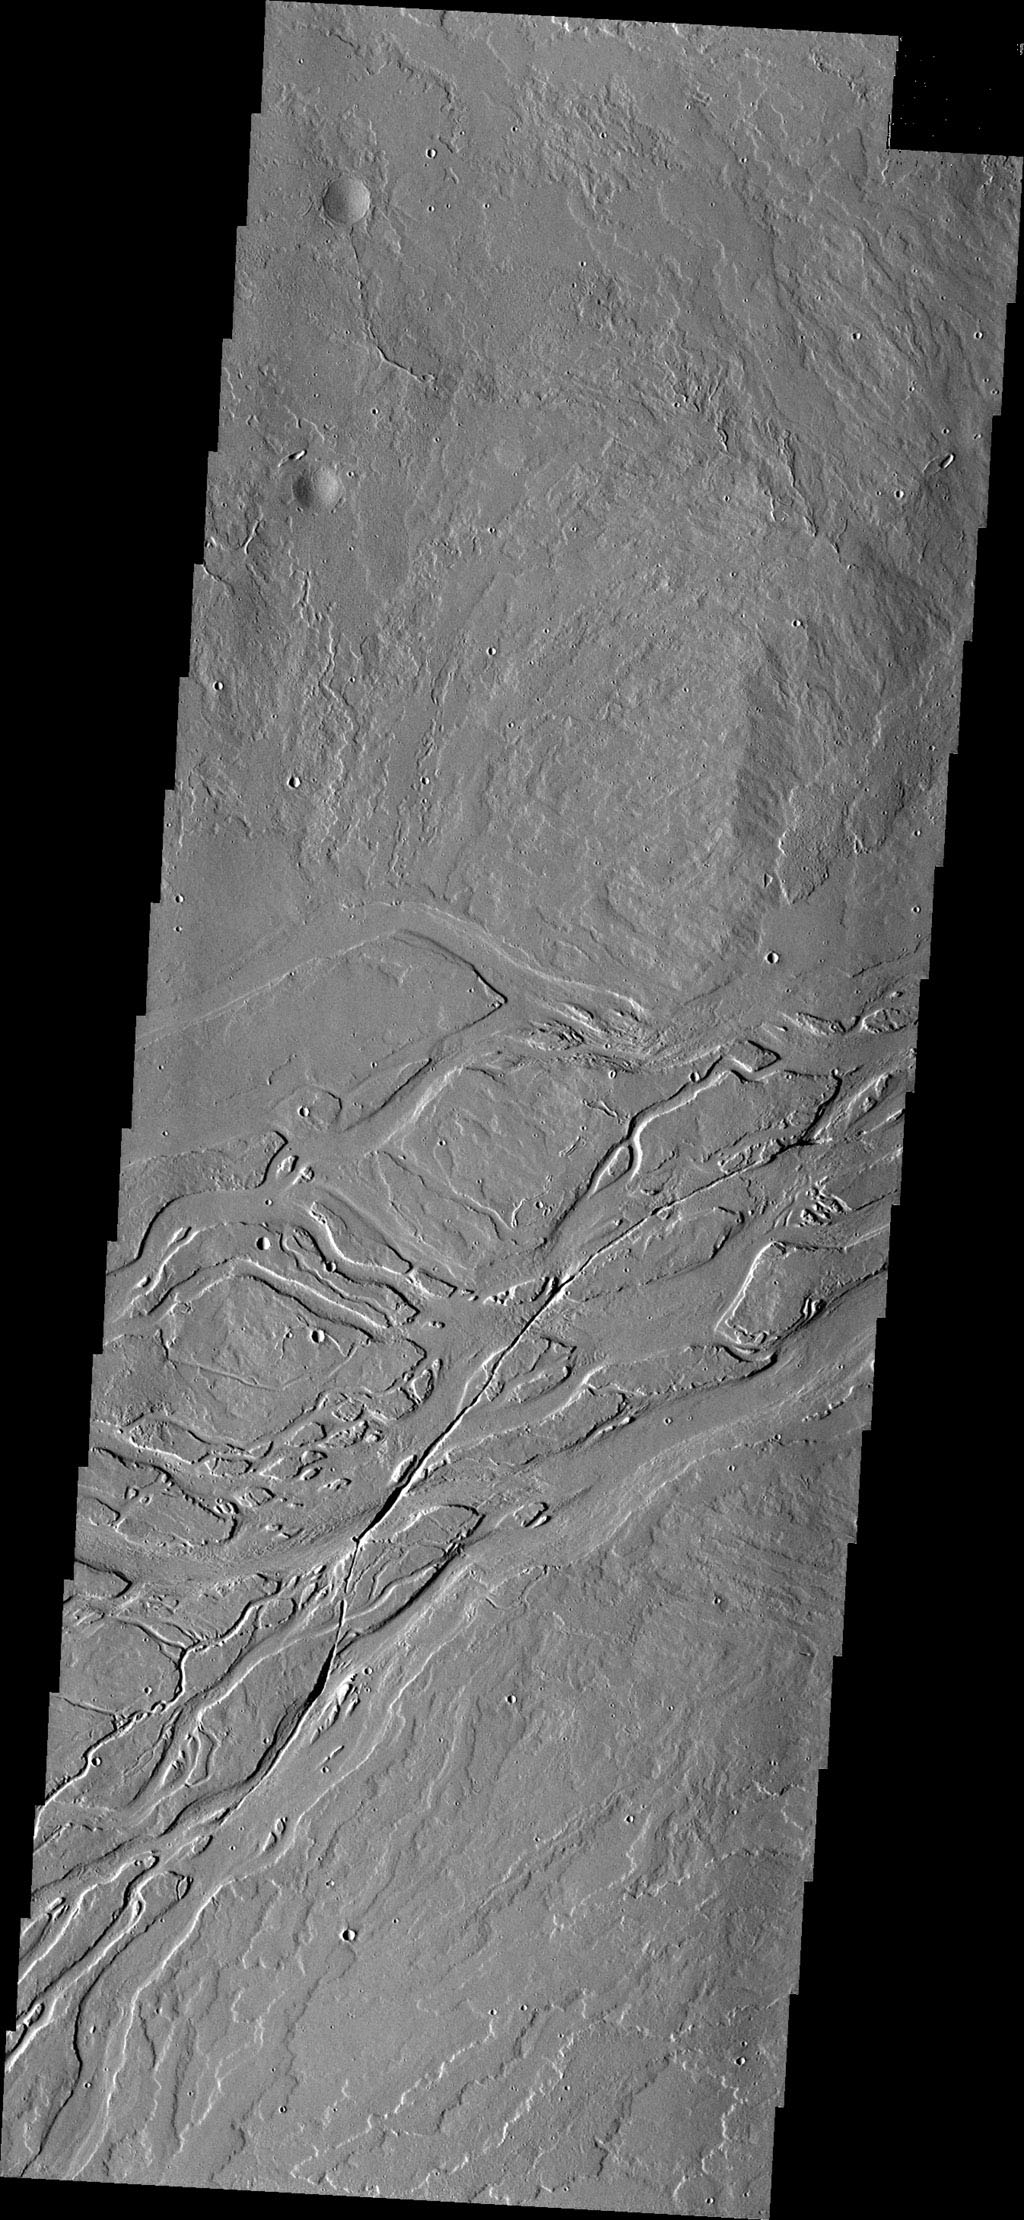 This image captured by NASA's 2001 Mars Odyssey spacecraft shows lava channels in the Tharsis plains on Mars.